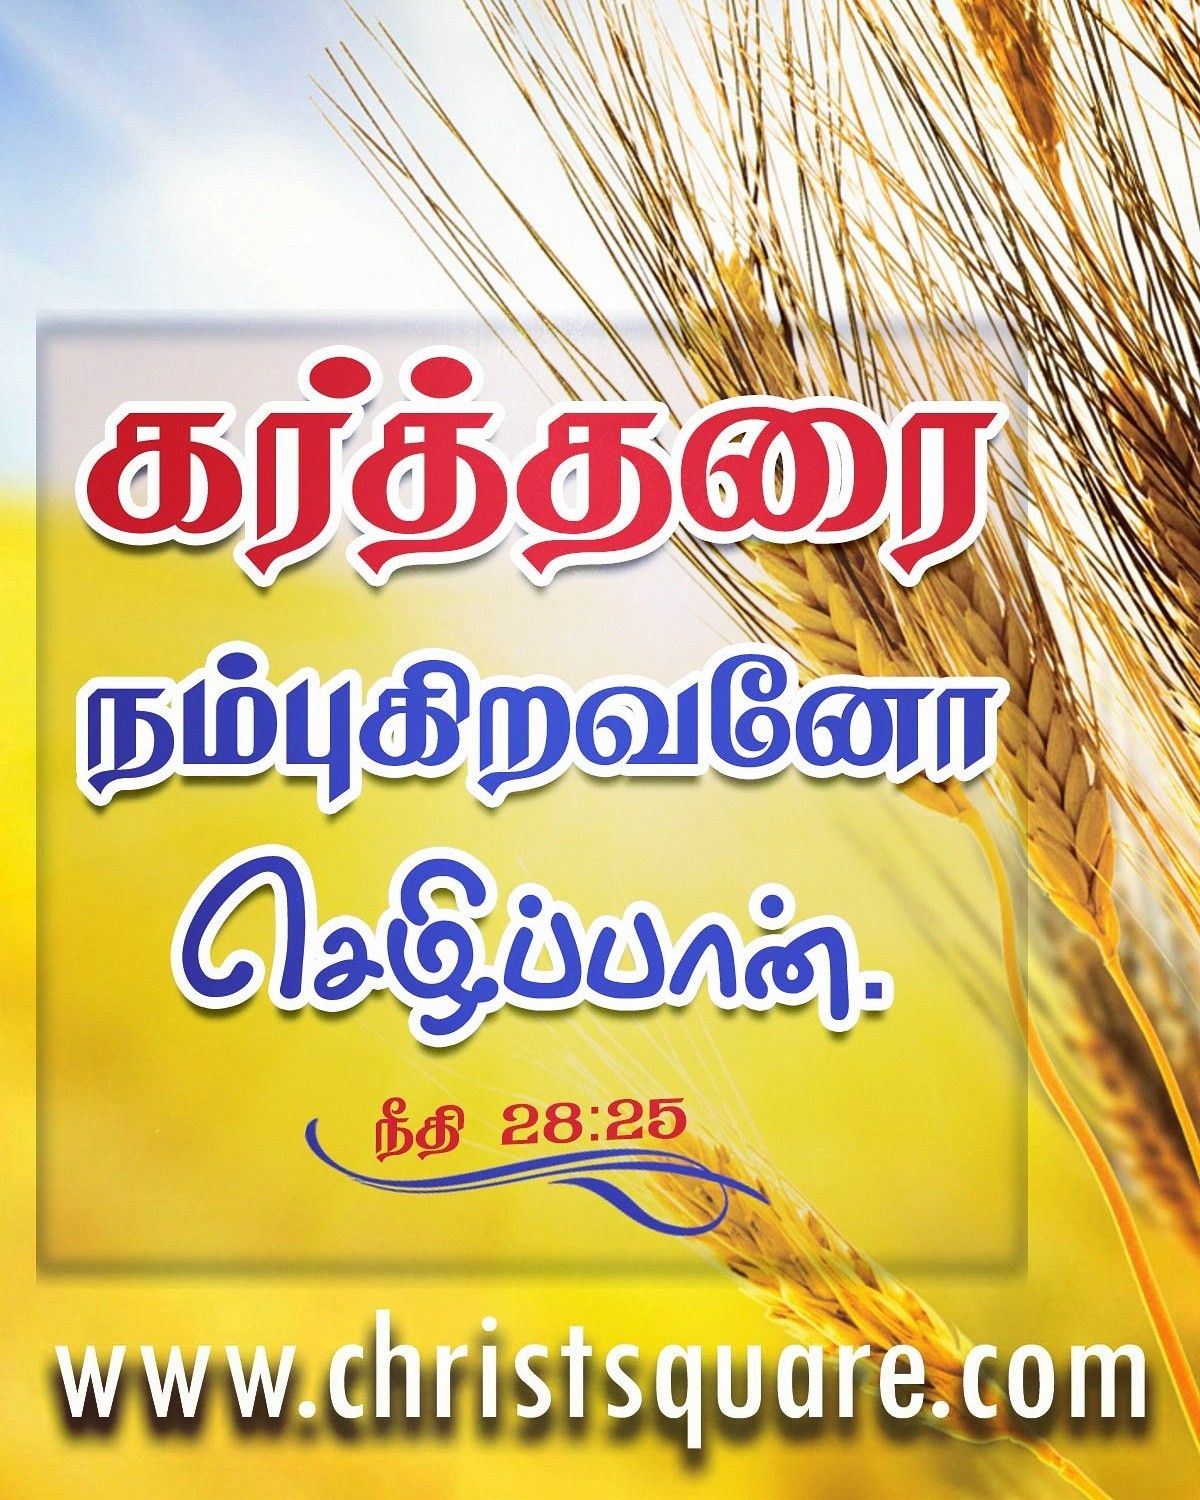 Bible Quotes In Tamil Wallpaper 1200x1500 Wallpaper Teahub Io